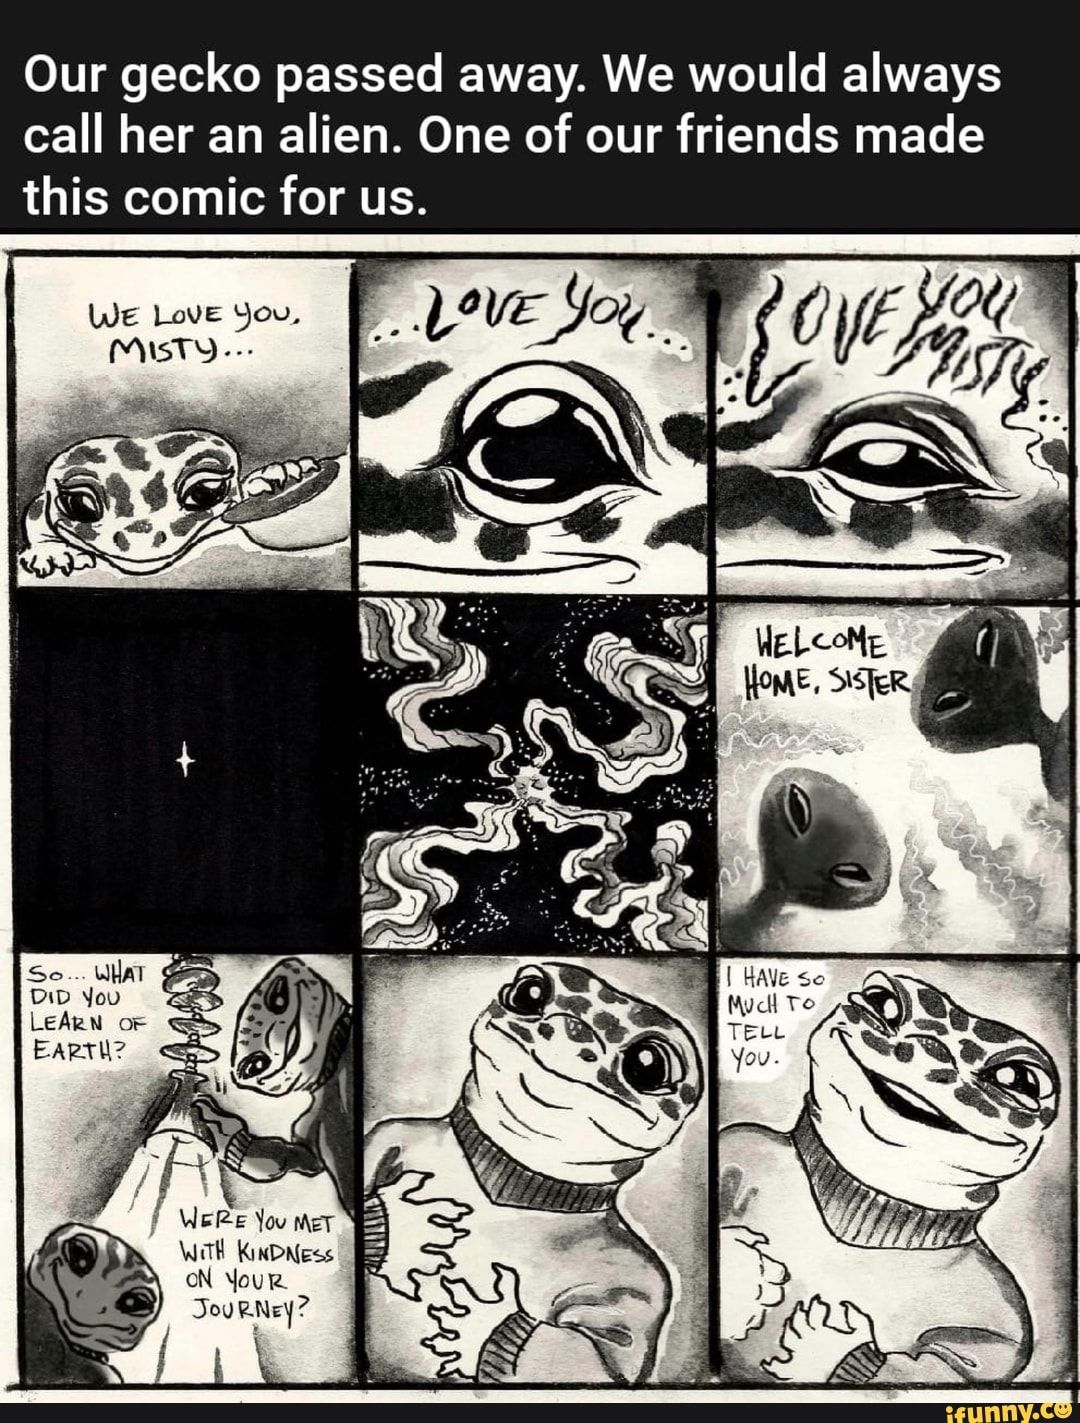 Photo of Our gecko passed away. We would always call her an alien. One of our friends made this comic for us. – iFunny :)